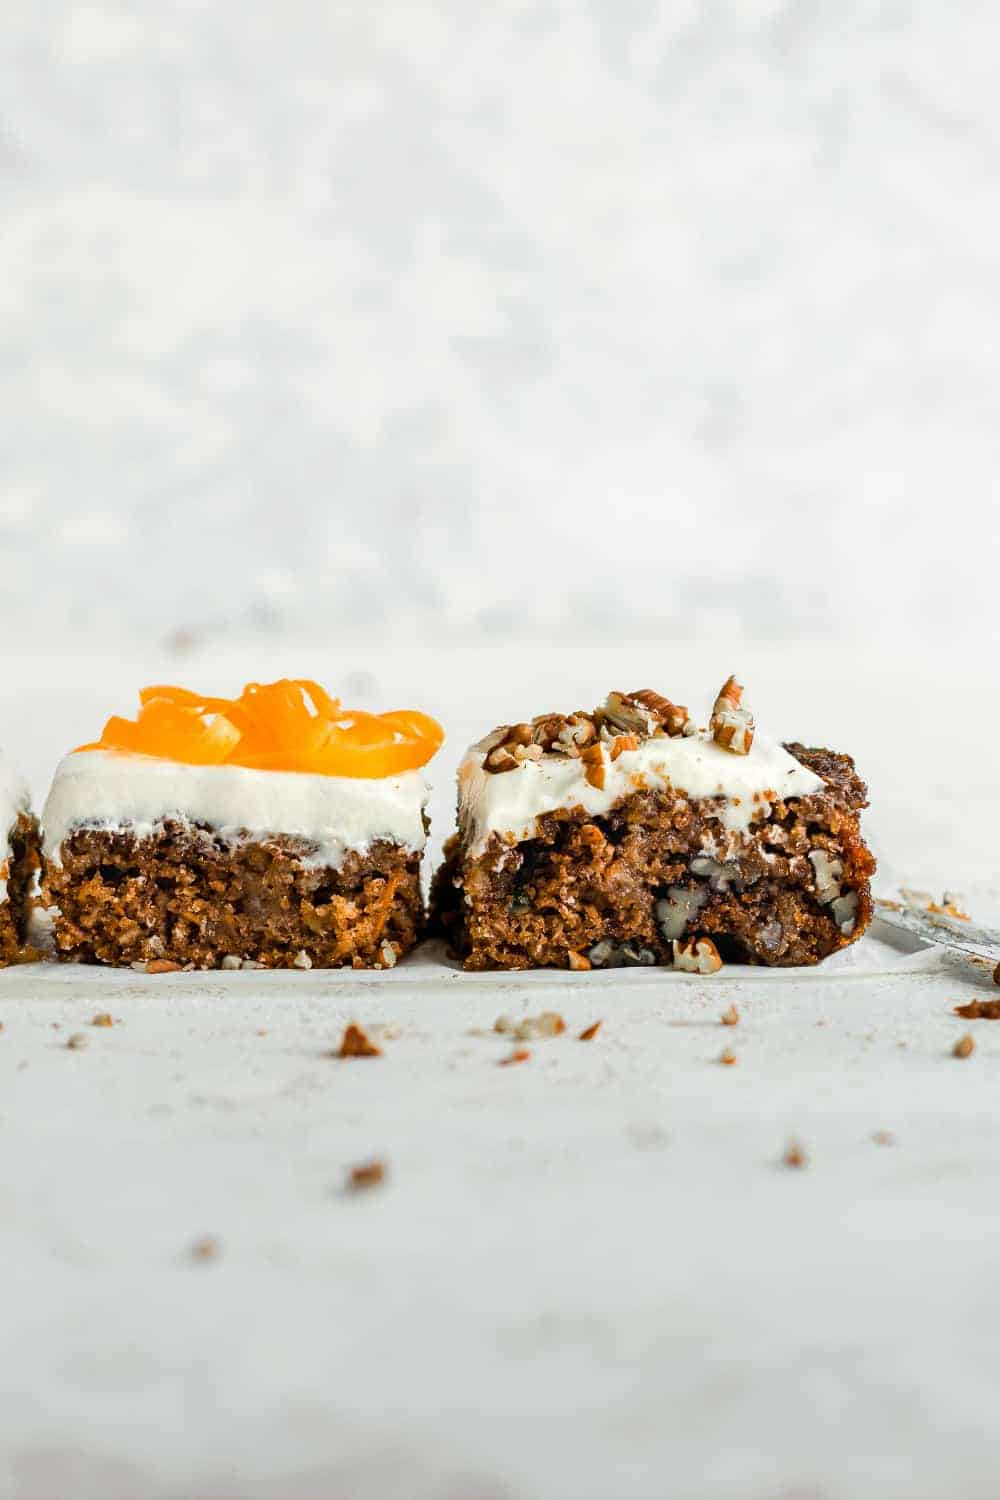 Carrot cake is an Easter favorite, and this copycat version of J Alexander's will be your family's new go-to!